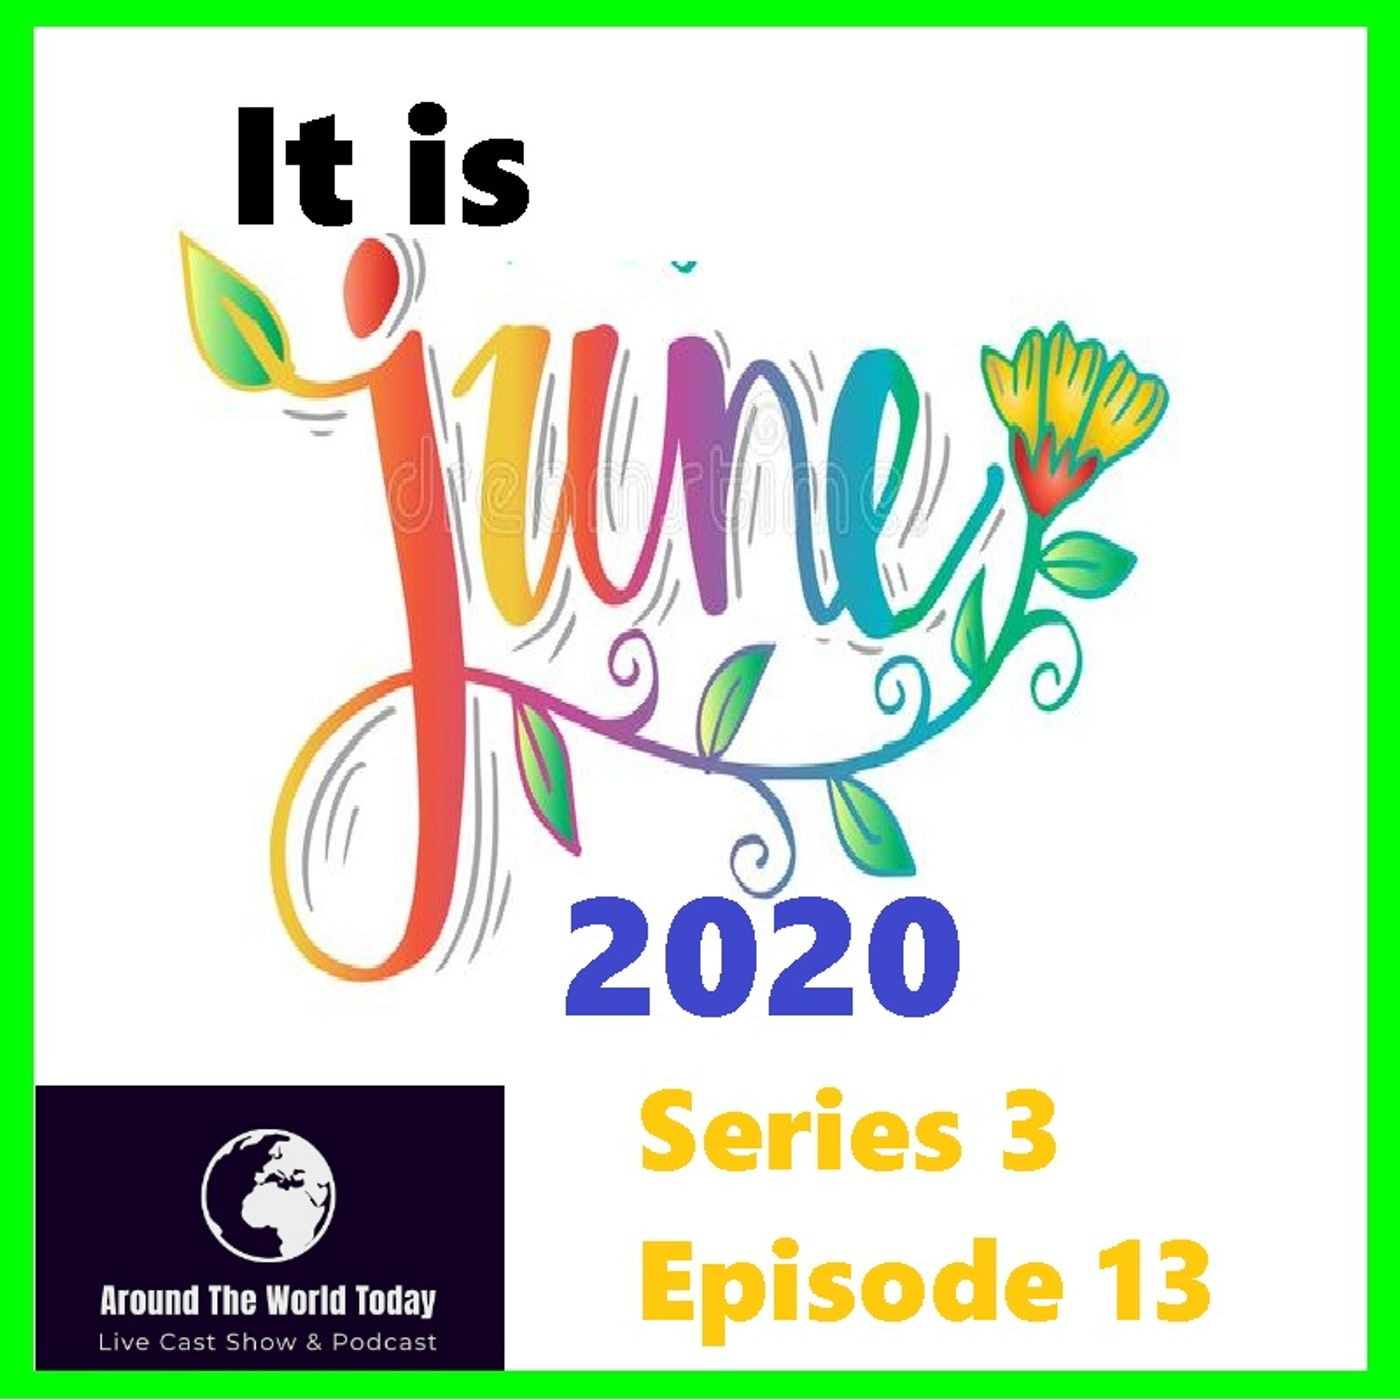 Around The World today Series 3 Episode 13 - It is June 2020